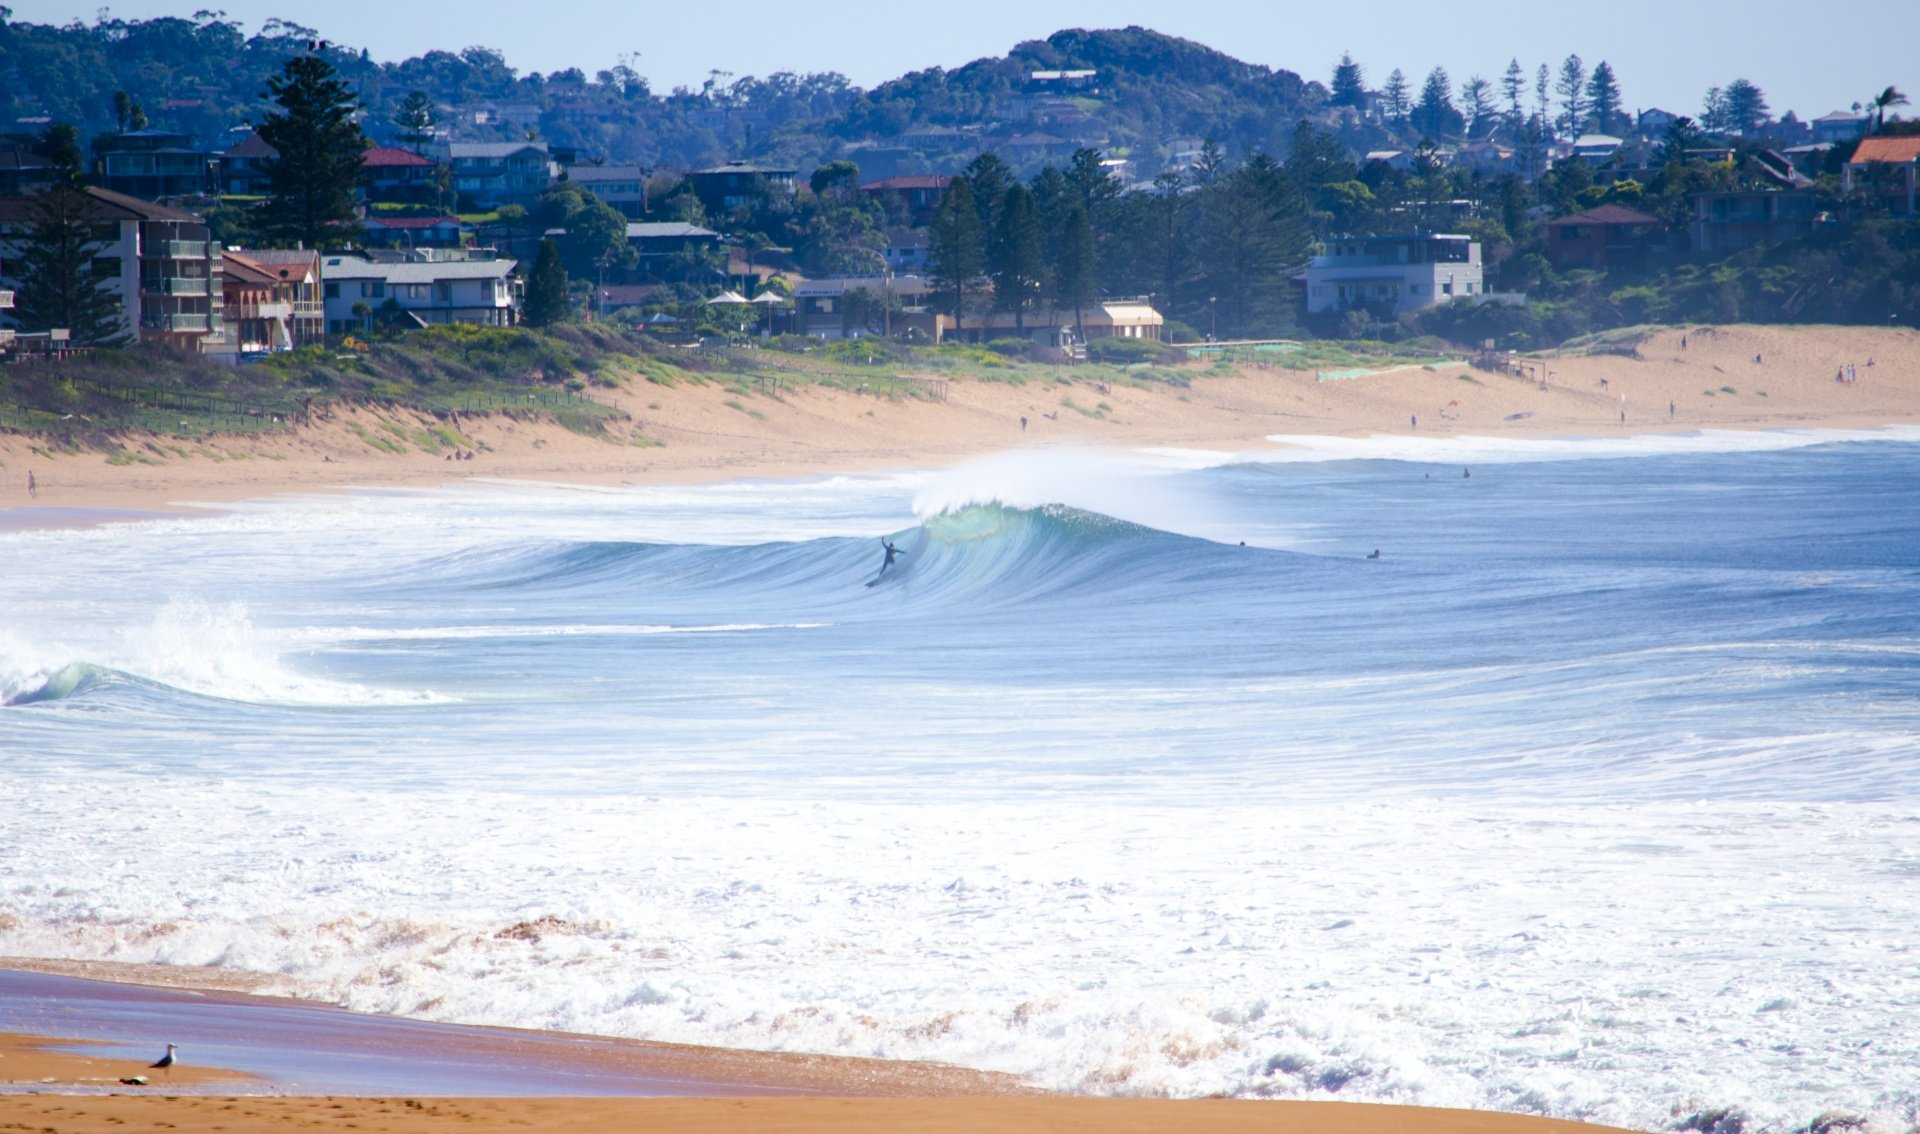 FrenchyNSW's photo of South Narrabeen